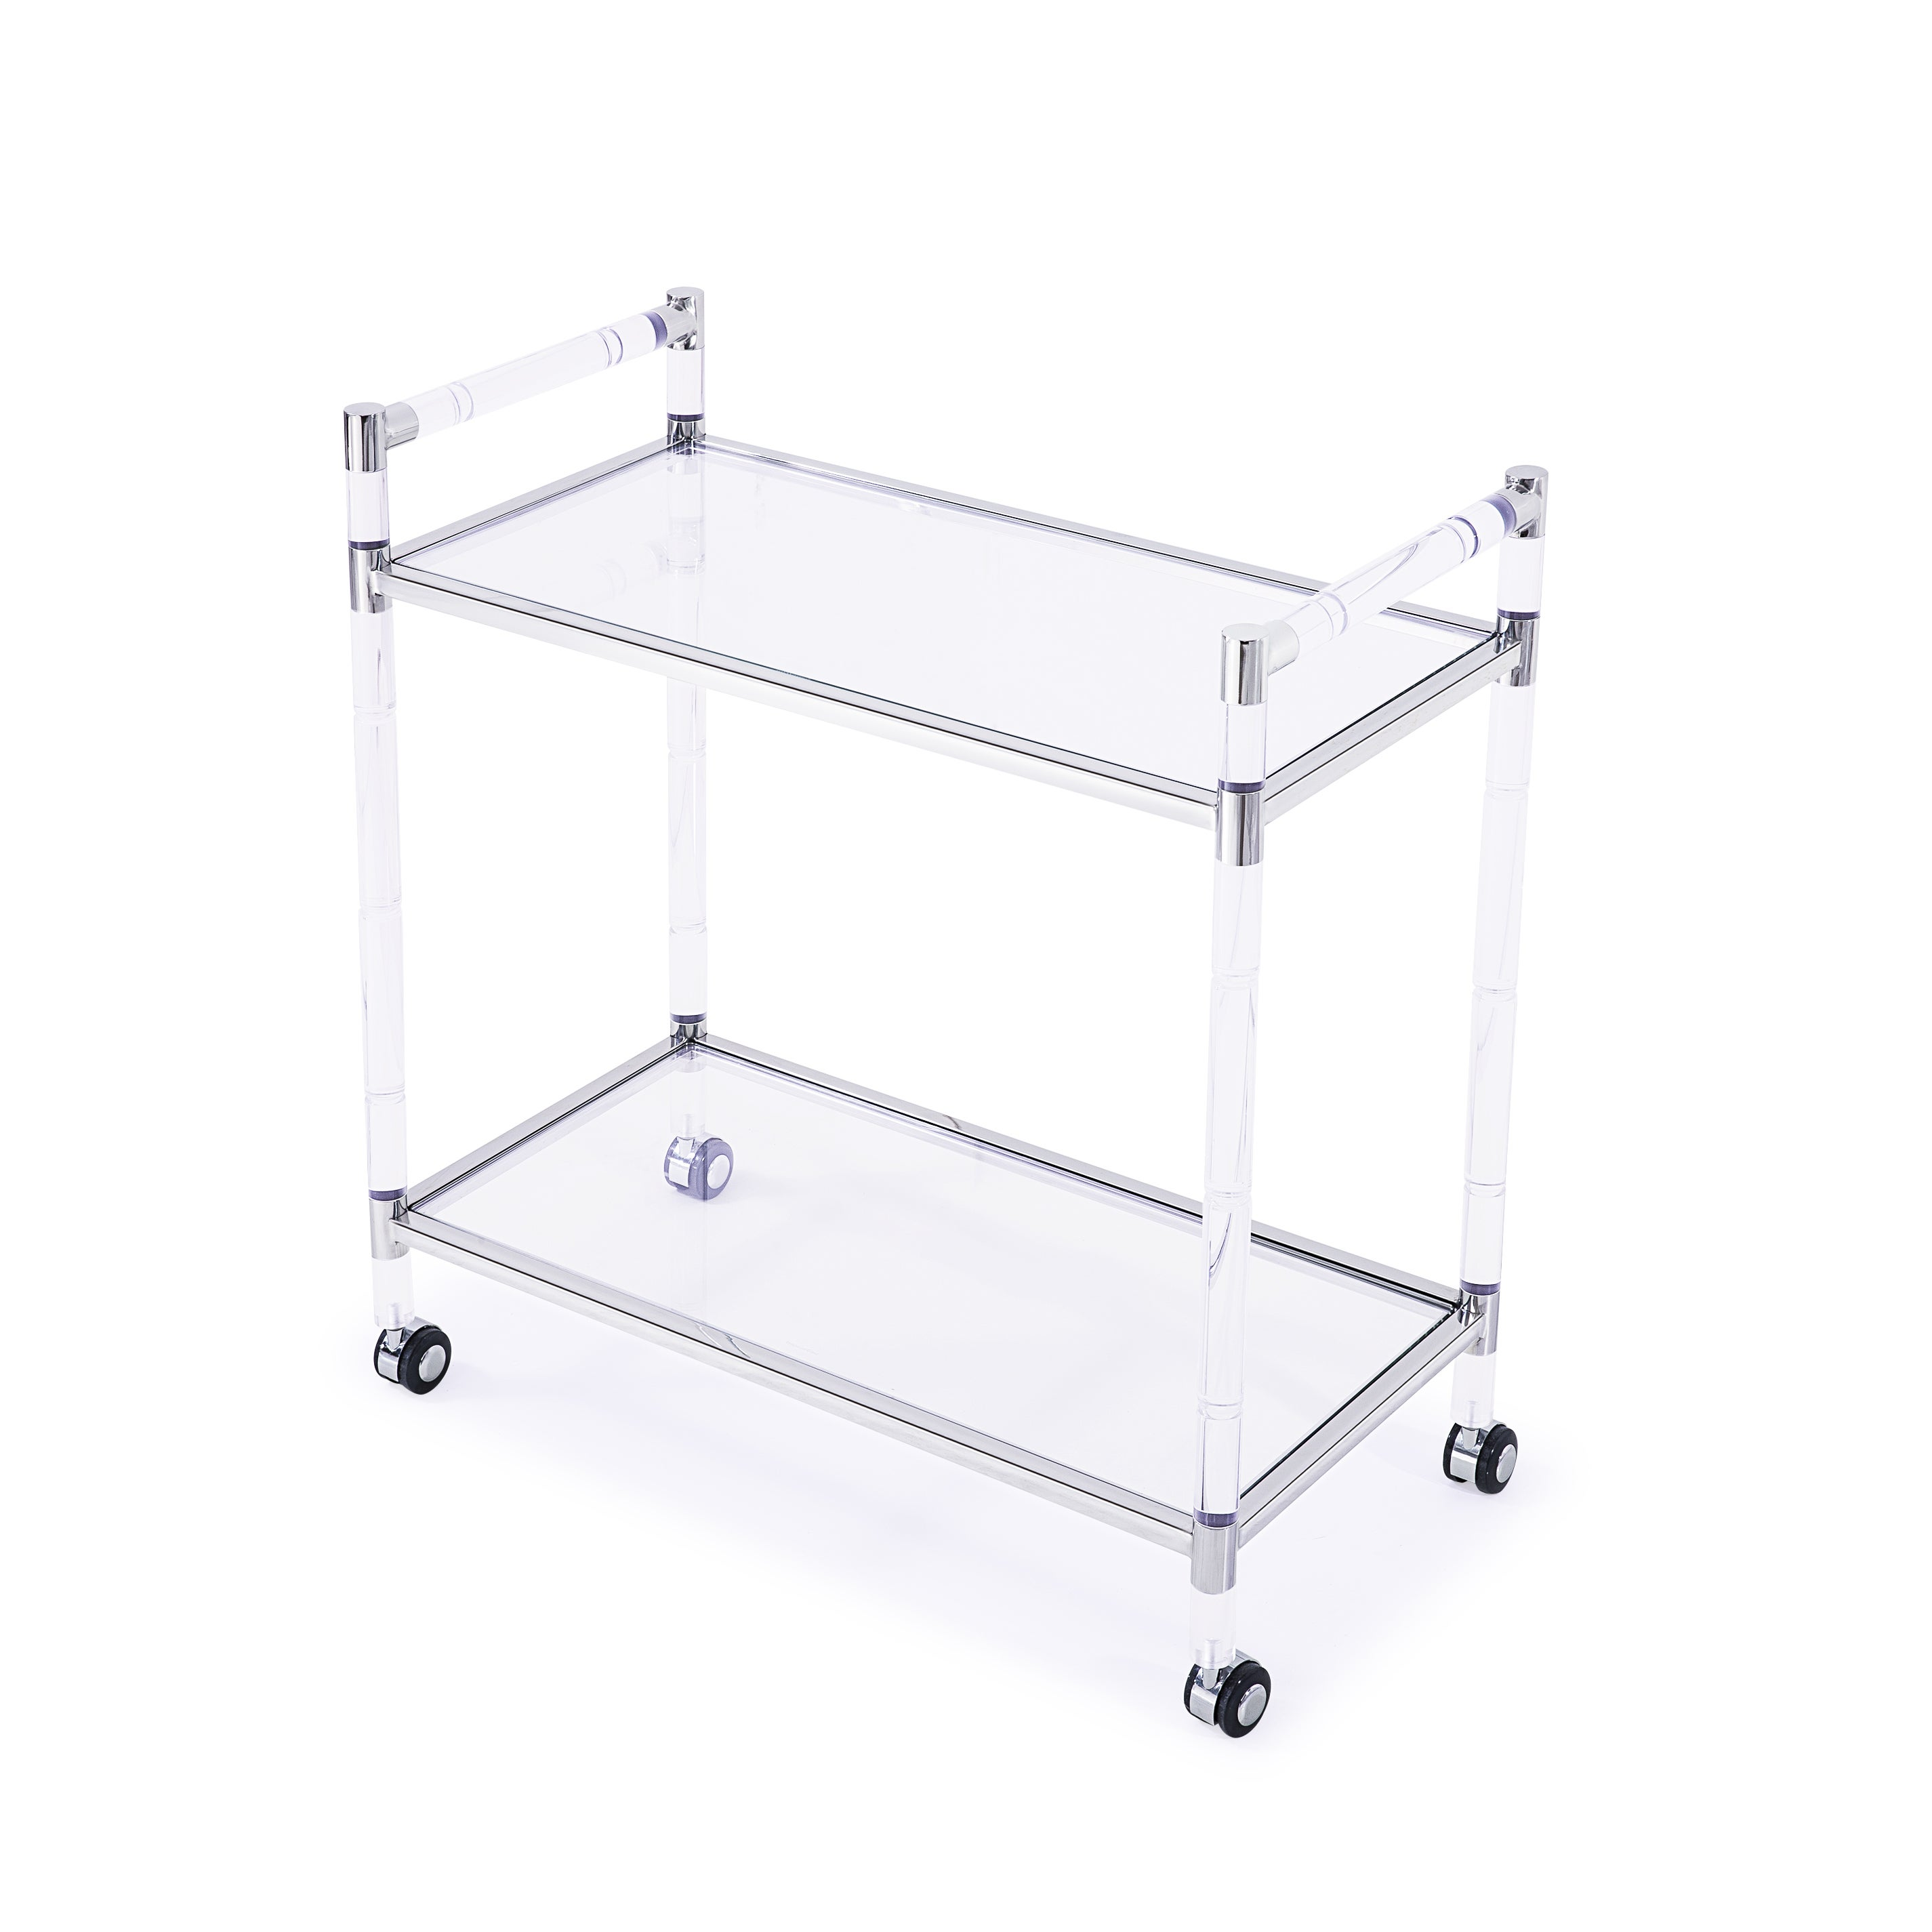 hq shower trolley assisted hoist supplies systems products orca bathing healthcare bathtub